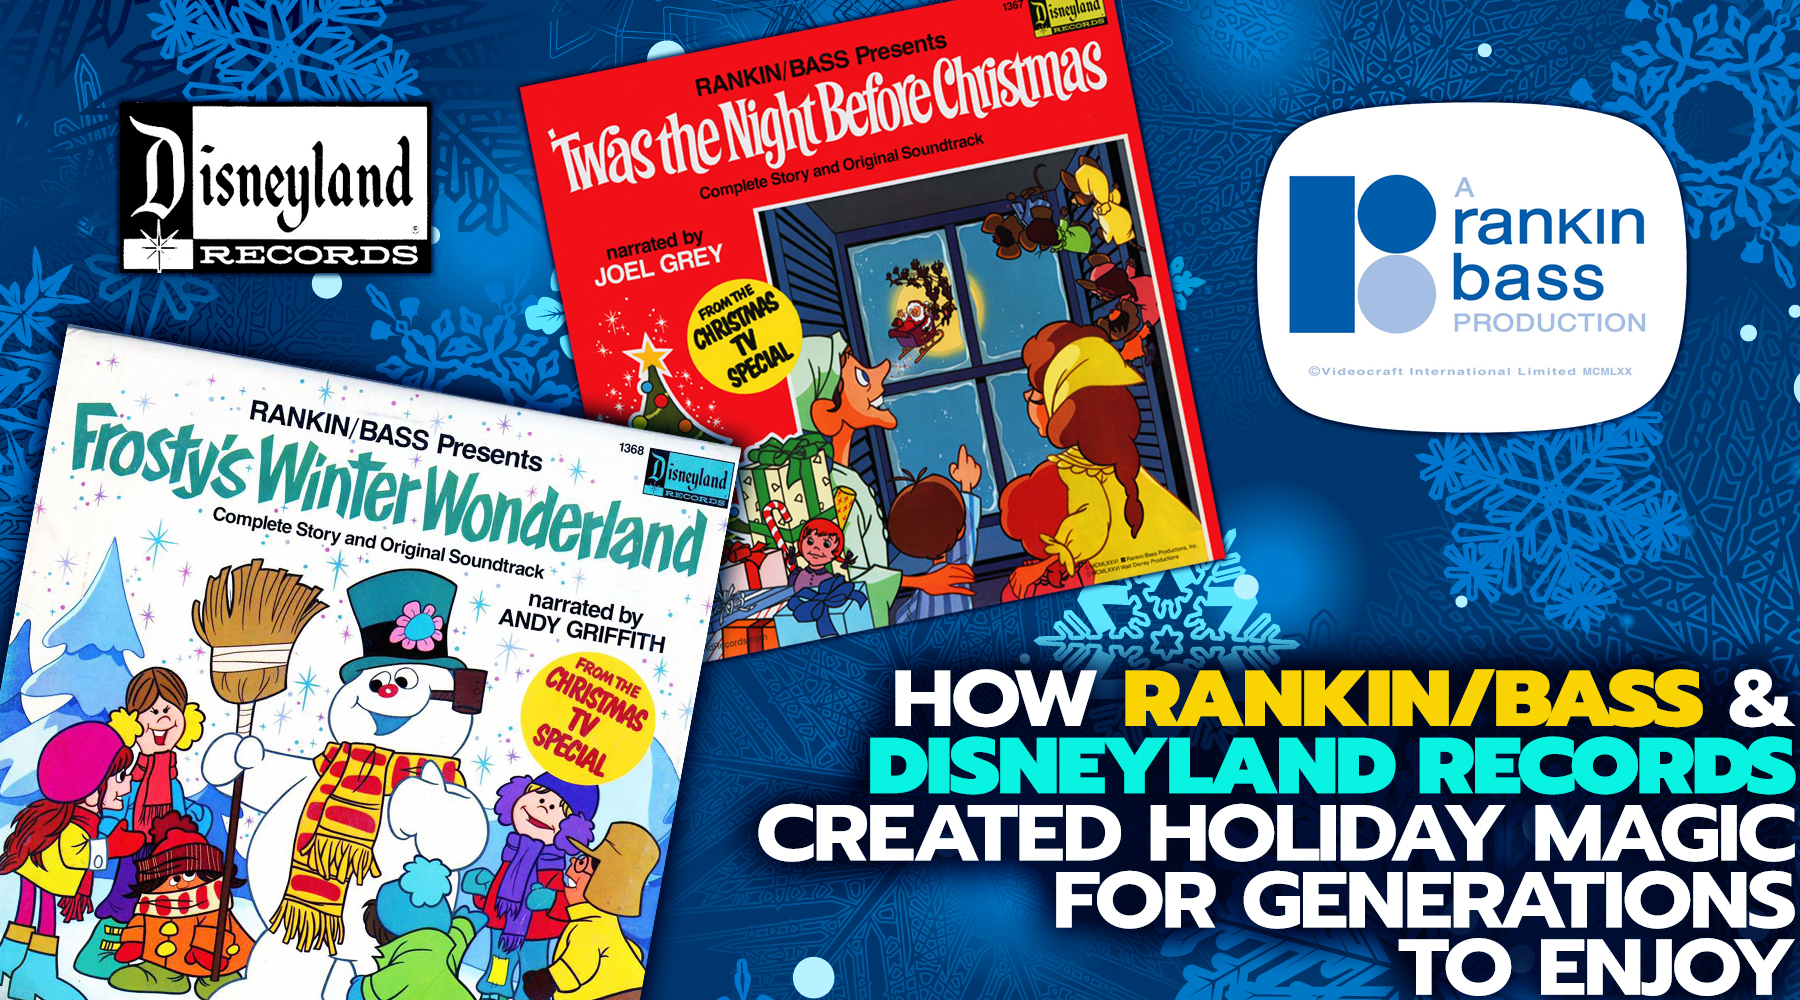 How Rankin/Bass and Disneyland Records Created Holiday Magic for Generations to Enjoy